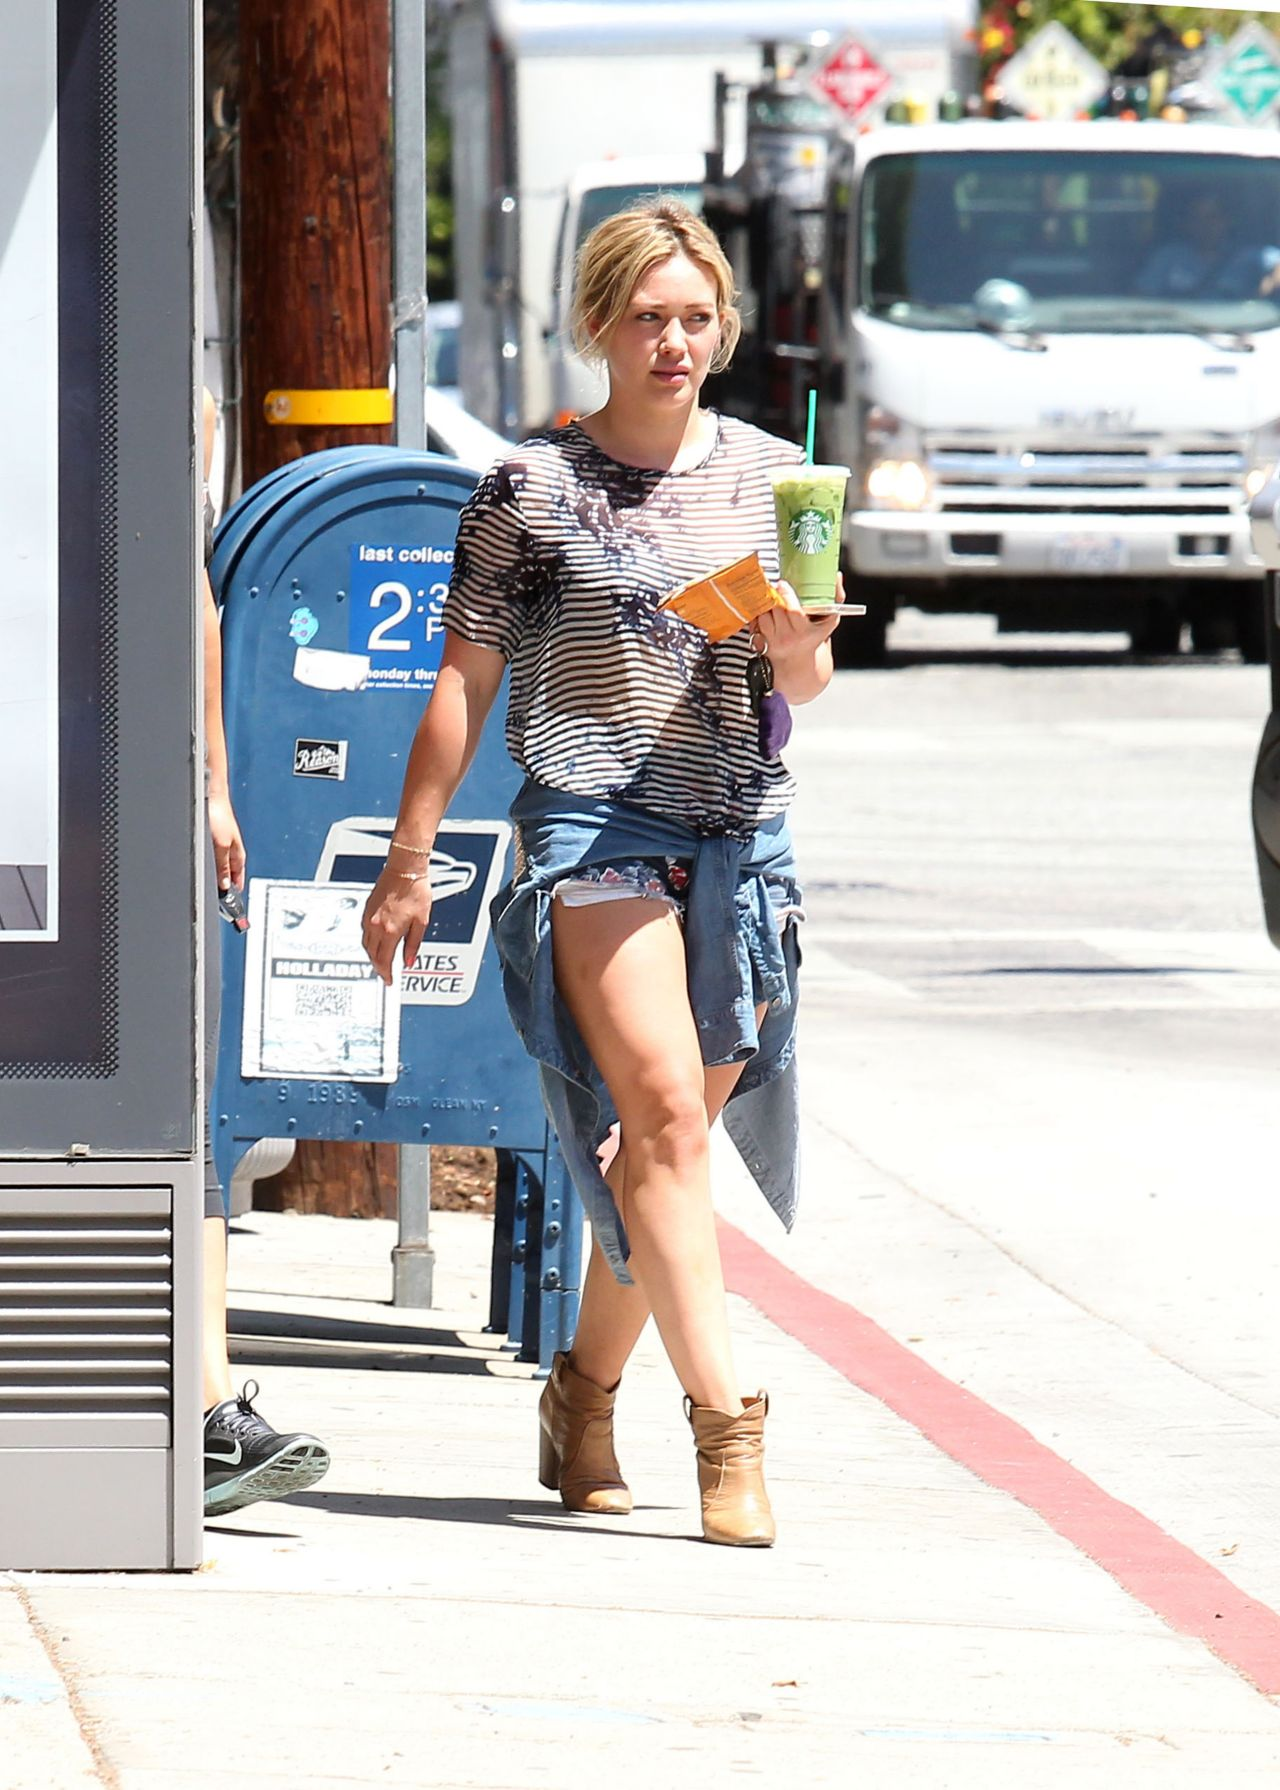 Hilary Duff Stops for Coffee at Starbucks in West Hollywood - May 2014